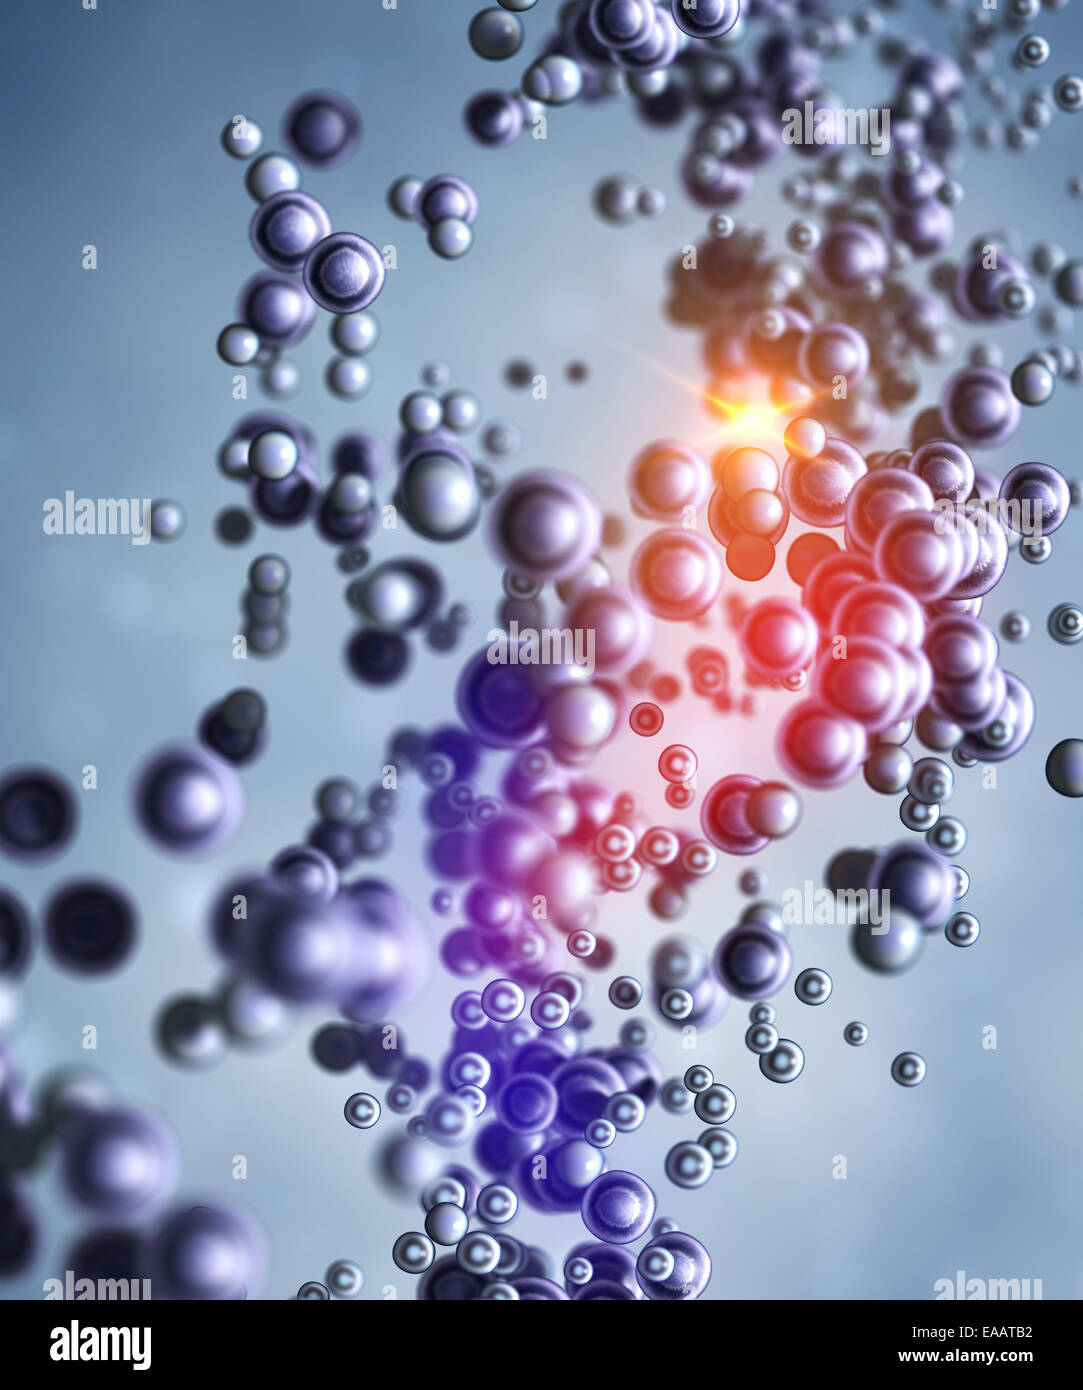 Abstract molecular structure - Stock Image